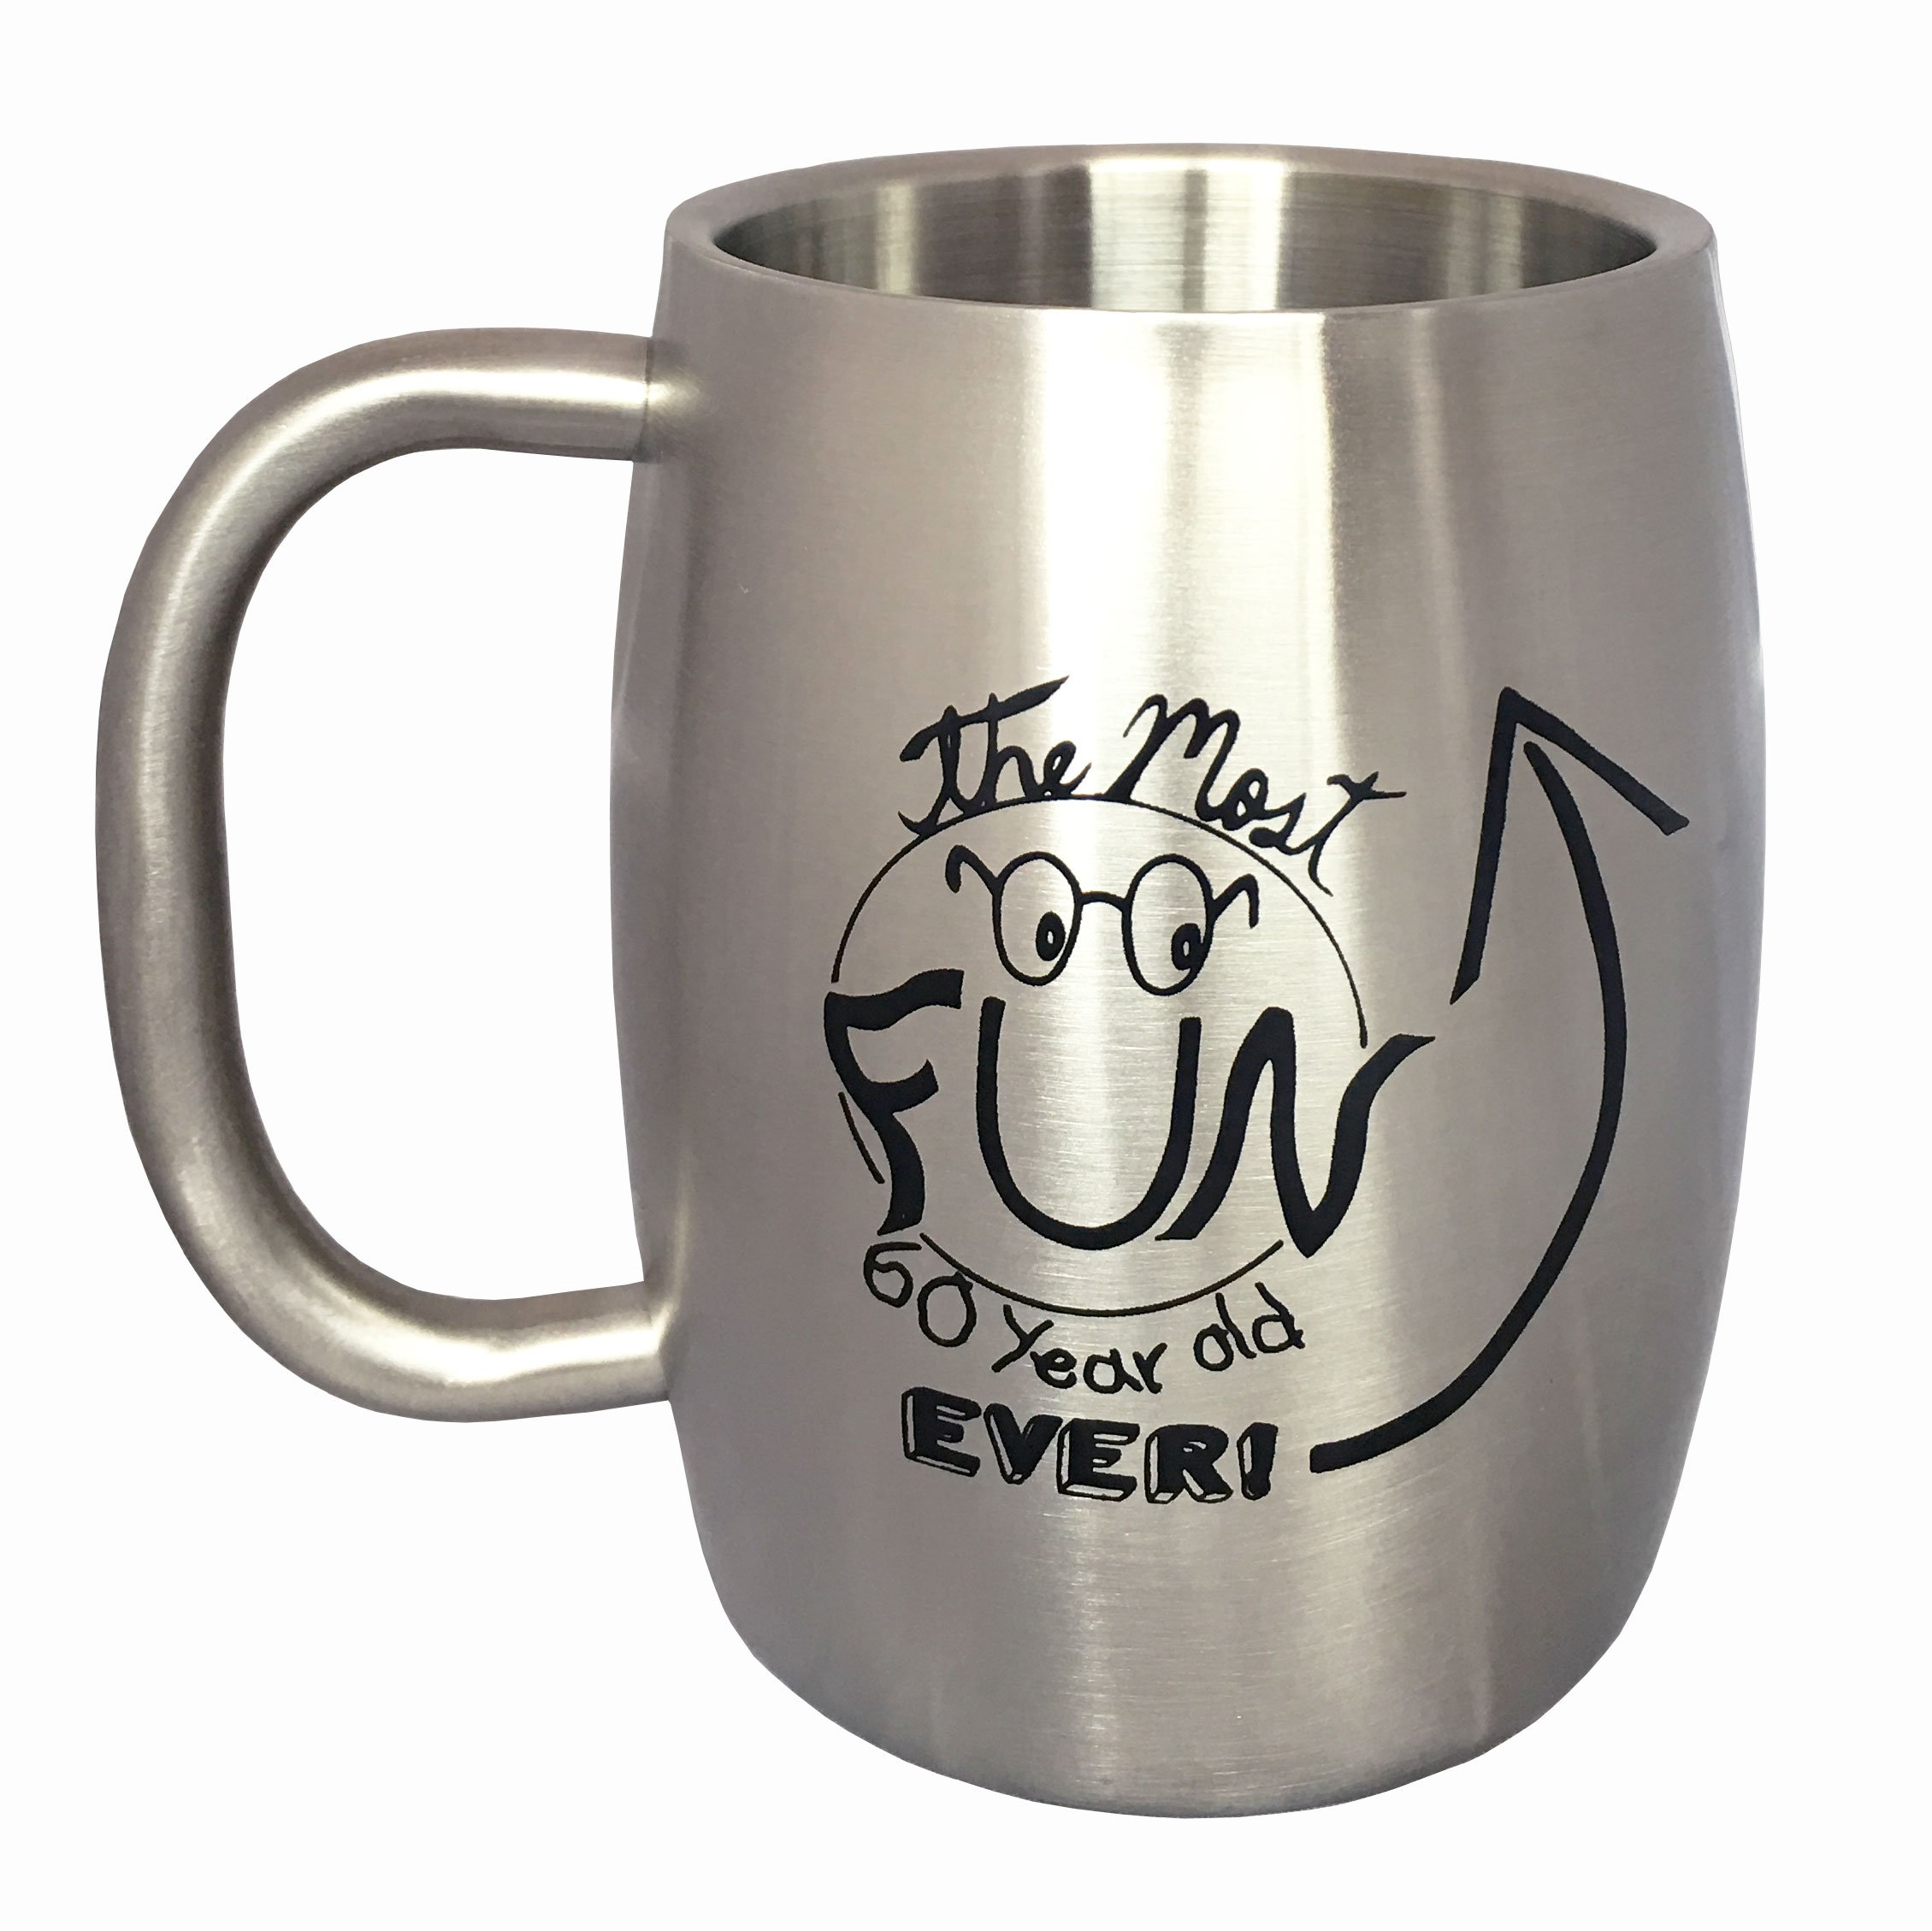 60th Birthday Gifts for Men - Stainless Steel Mug (14 ounces) - Insulated Beer Mug or Large Coffee Mug for Men by Lifestyle Banquet